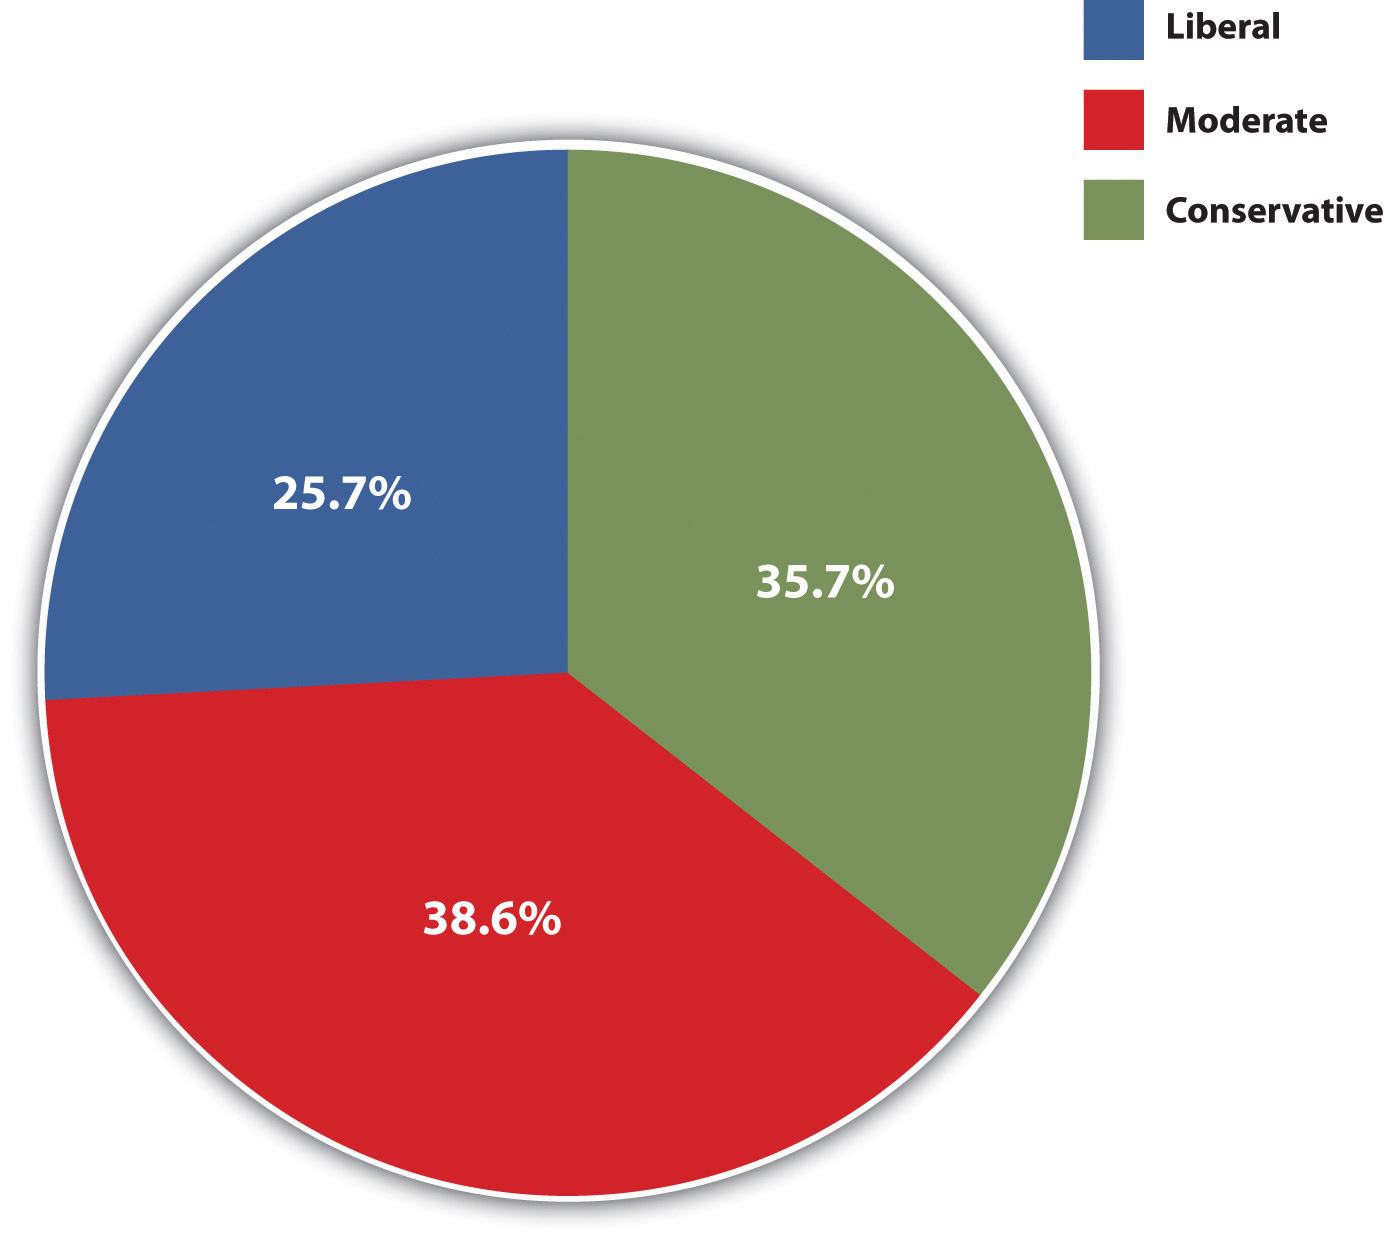 Political Ideology: 38.6% moderate, 35.7% conservative, and 25.7% liberal